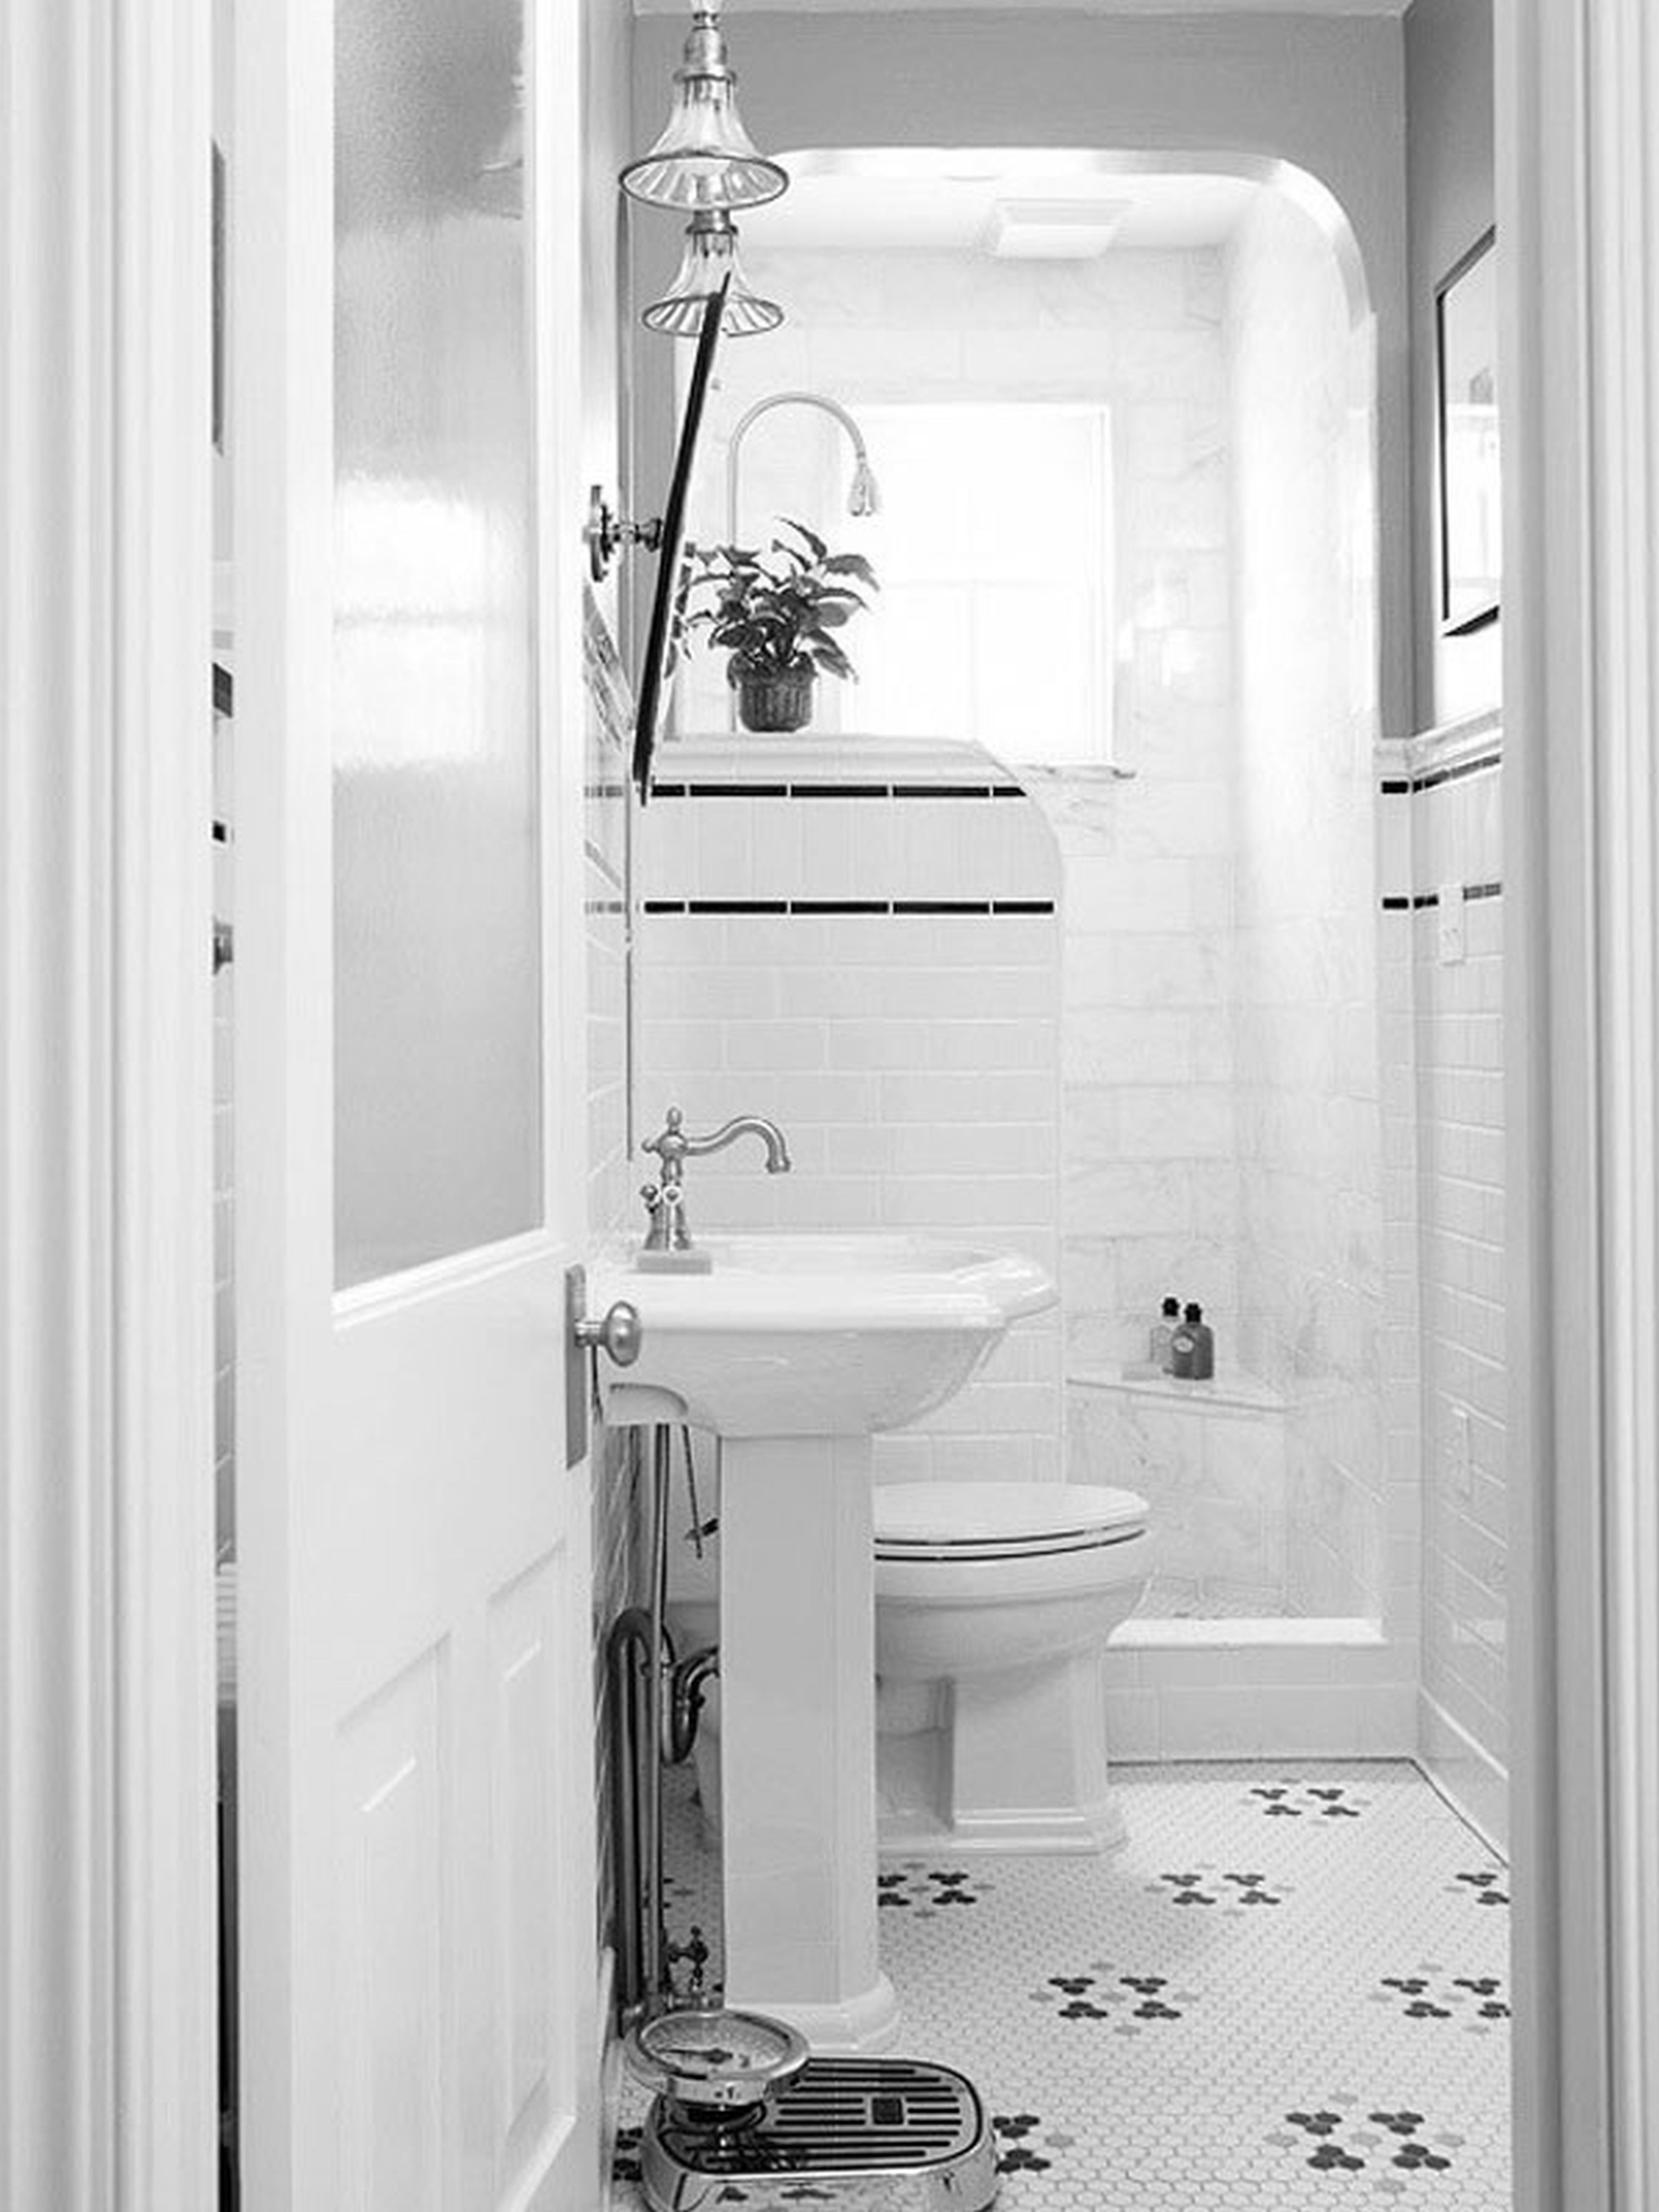 5 x 6 bathroom pictures google search small bathroom designssmall bathroomsvintage bathroomsbathroom picturesmumbai - Bathroom Designs In Mumbai